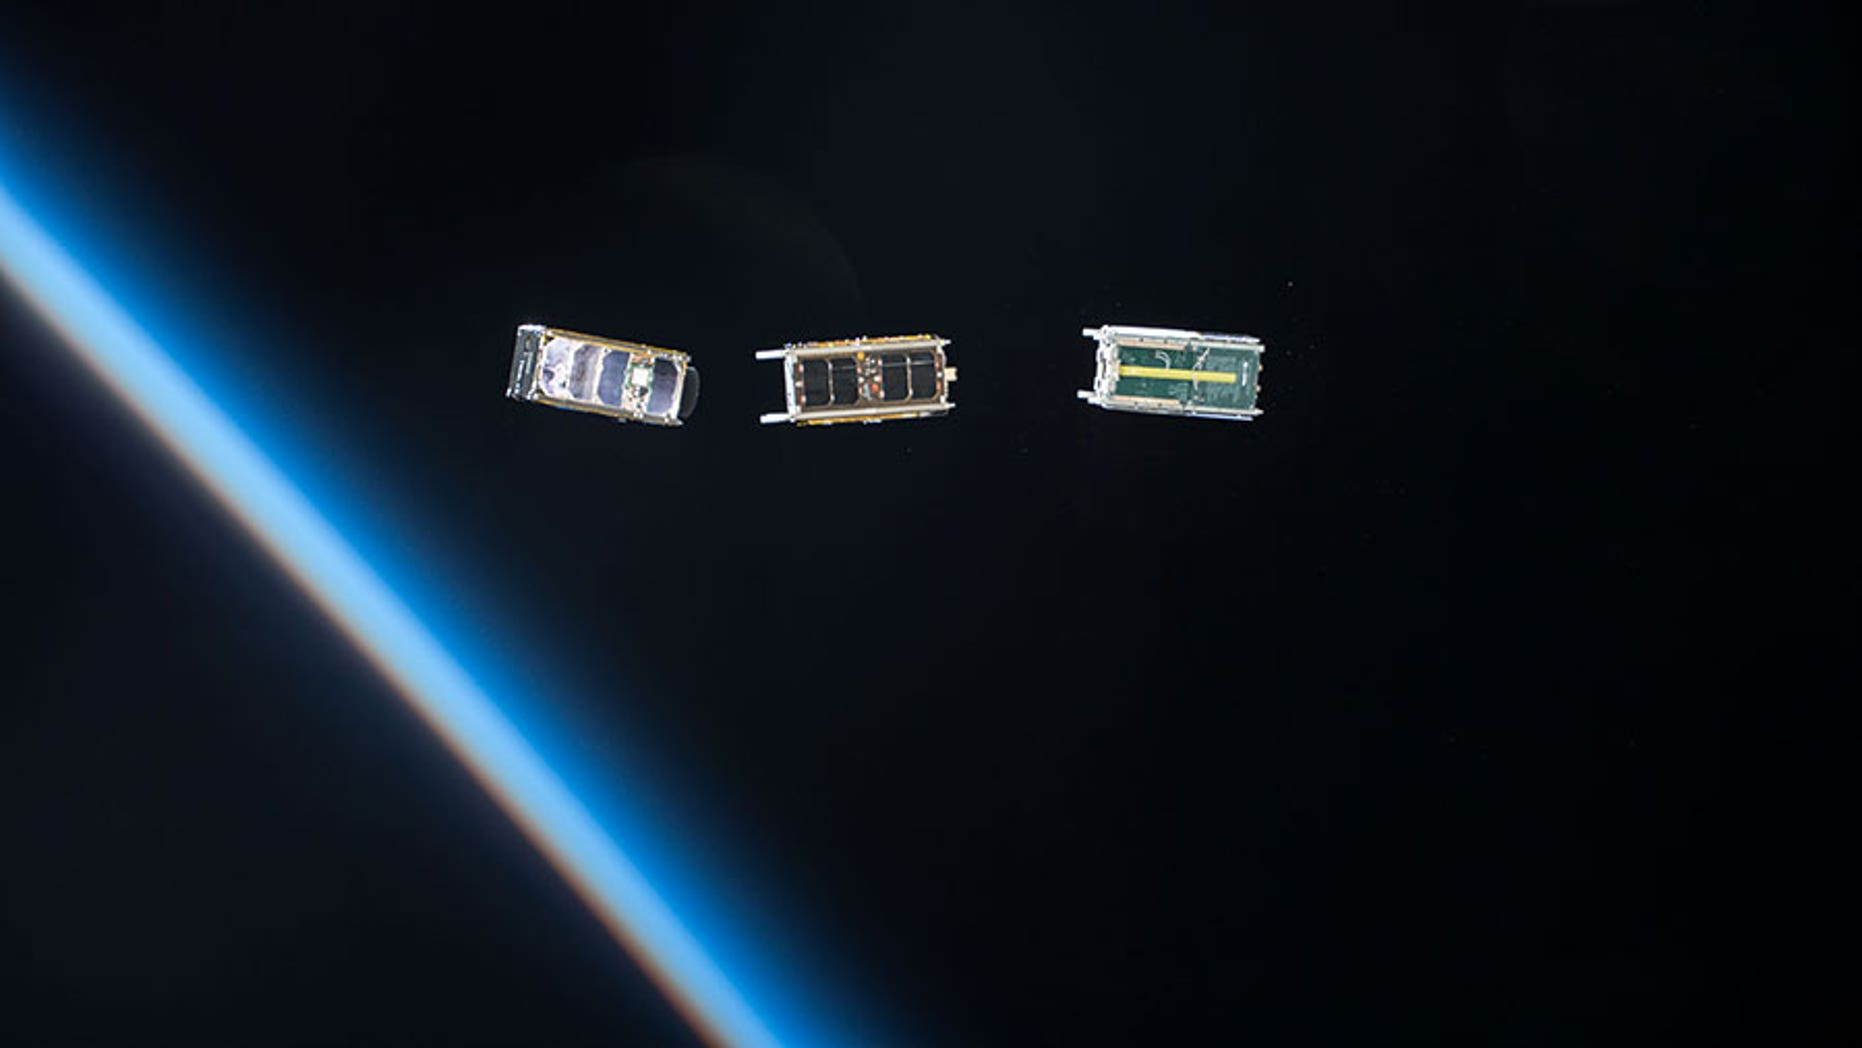 Cubesats are currently the standard small satellite, but some spacecraft designers are pushing their creations ever smaller.